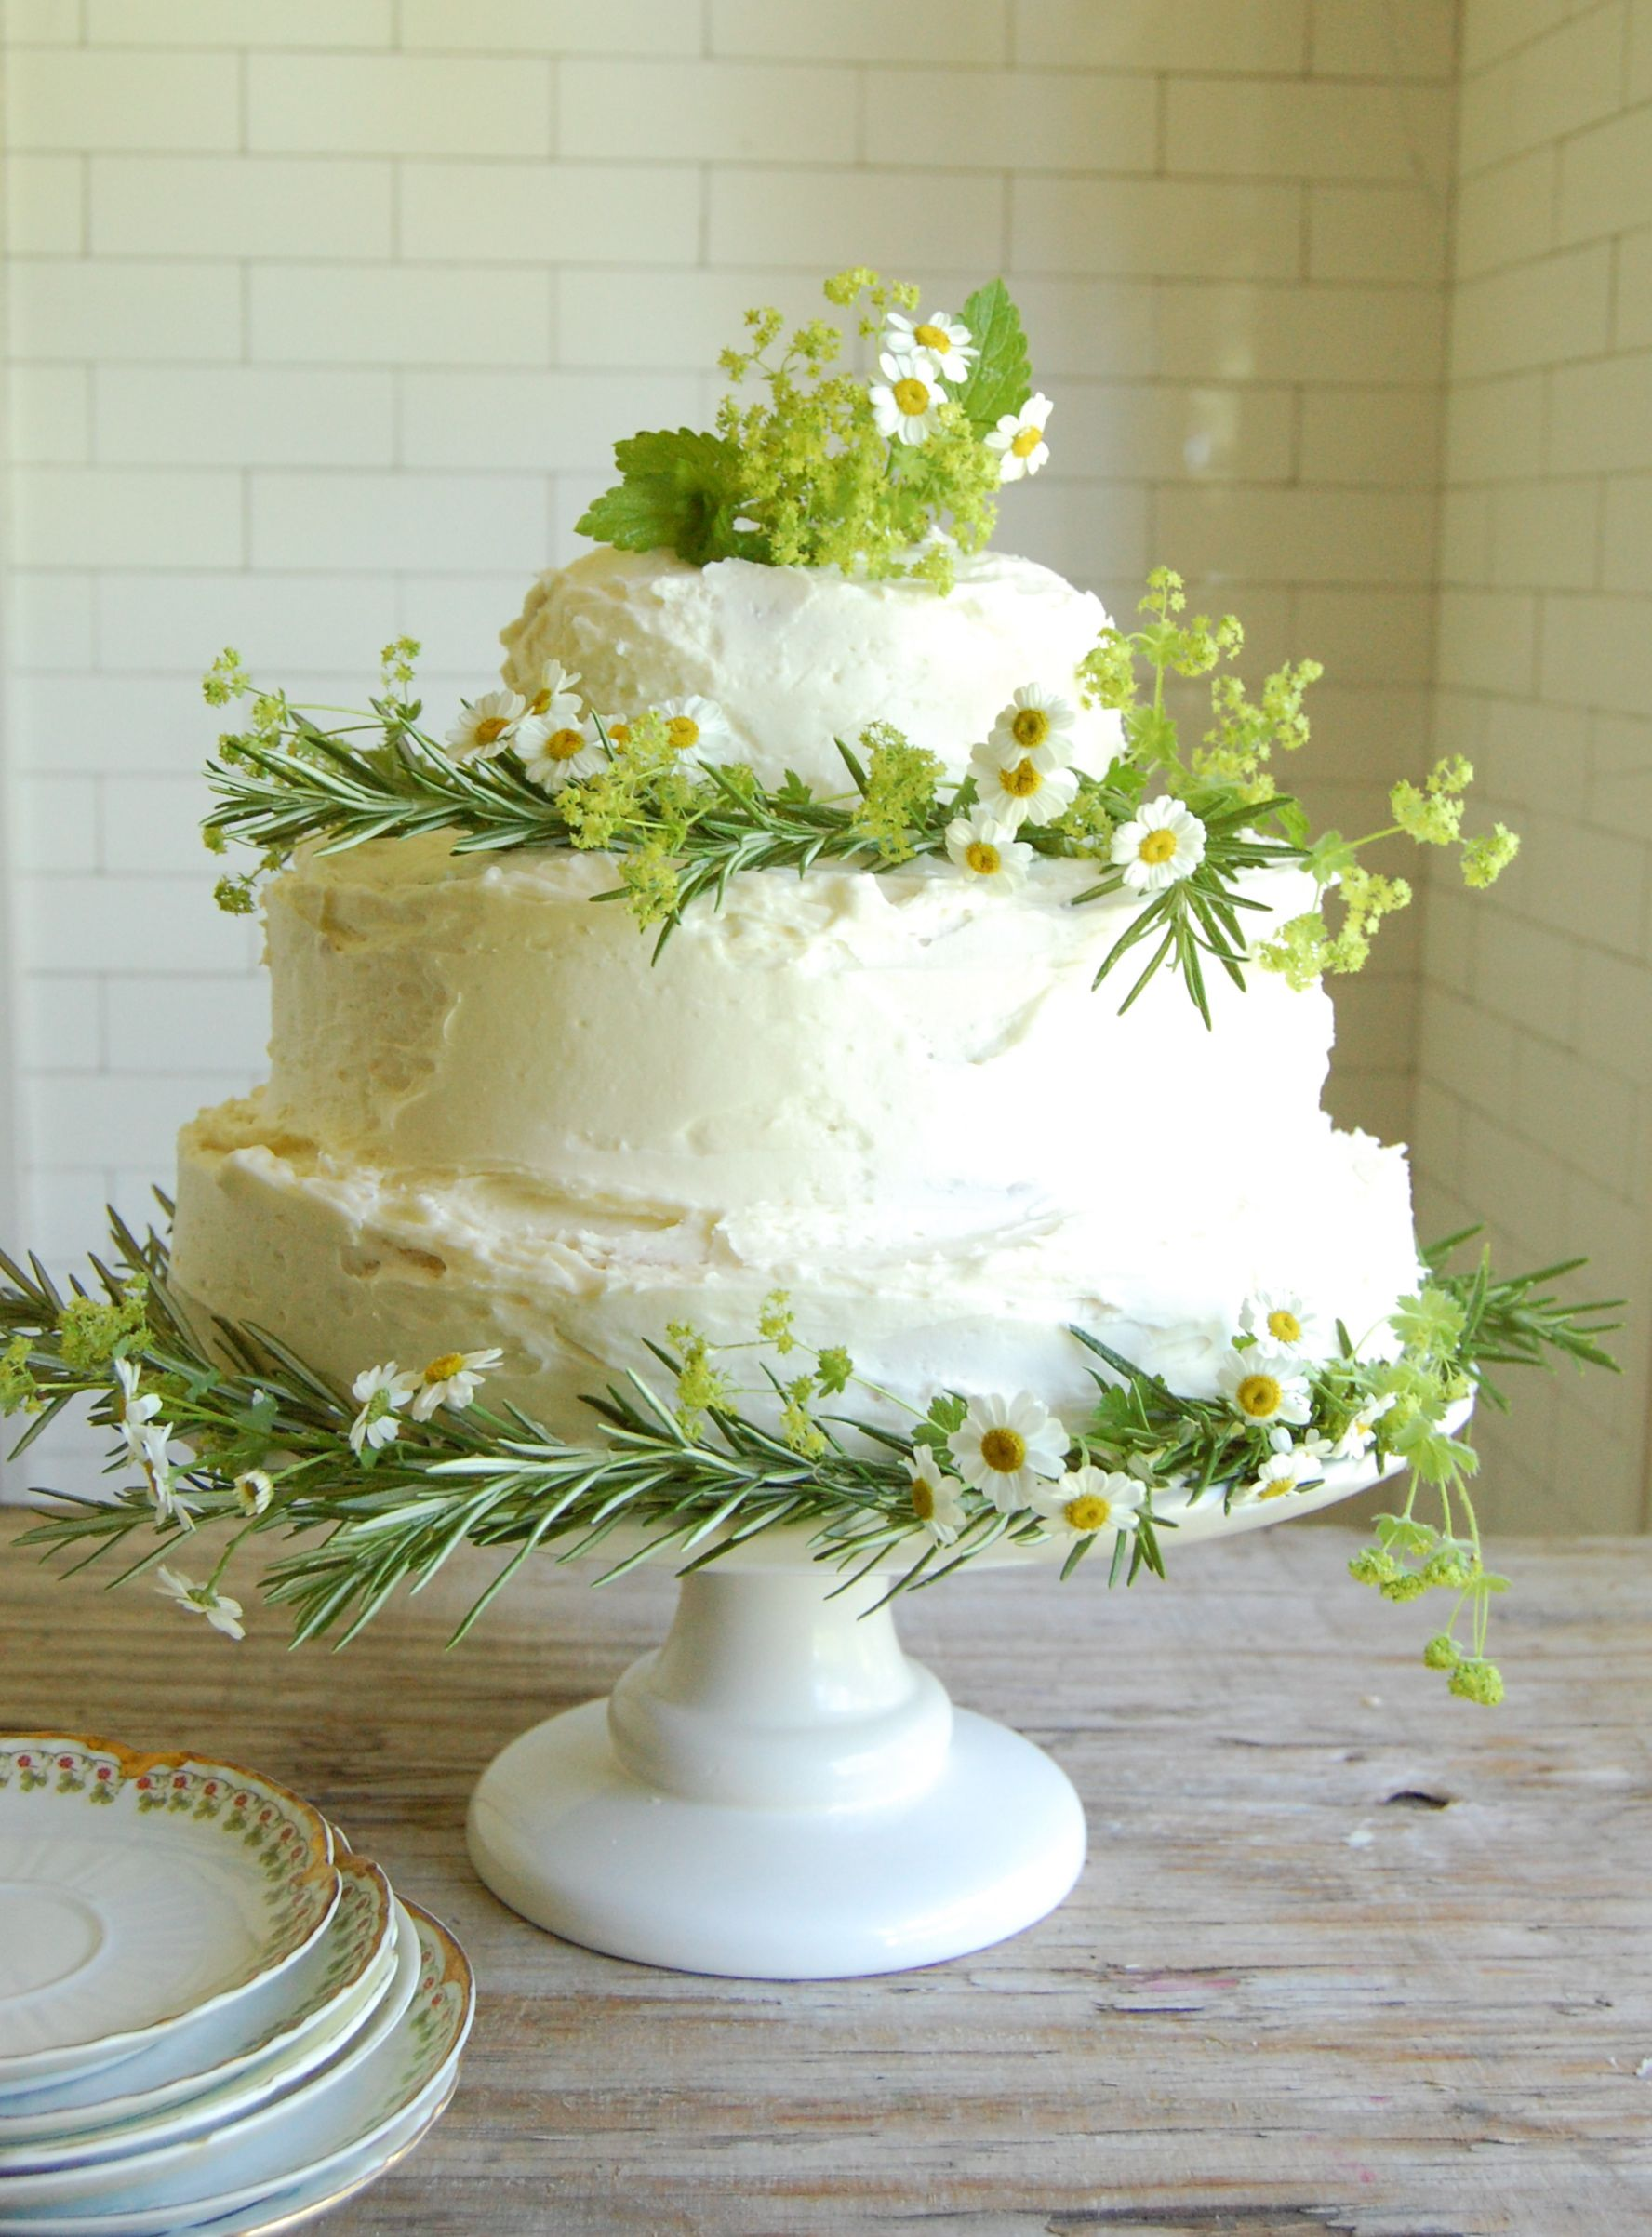 Homemade Wedding Cakes Can Be Beautiful And You Can Make The Cake